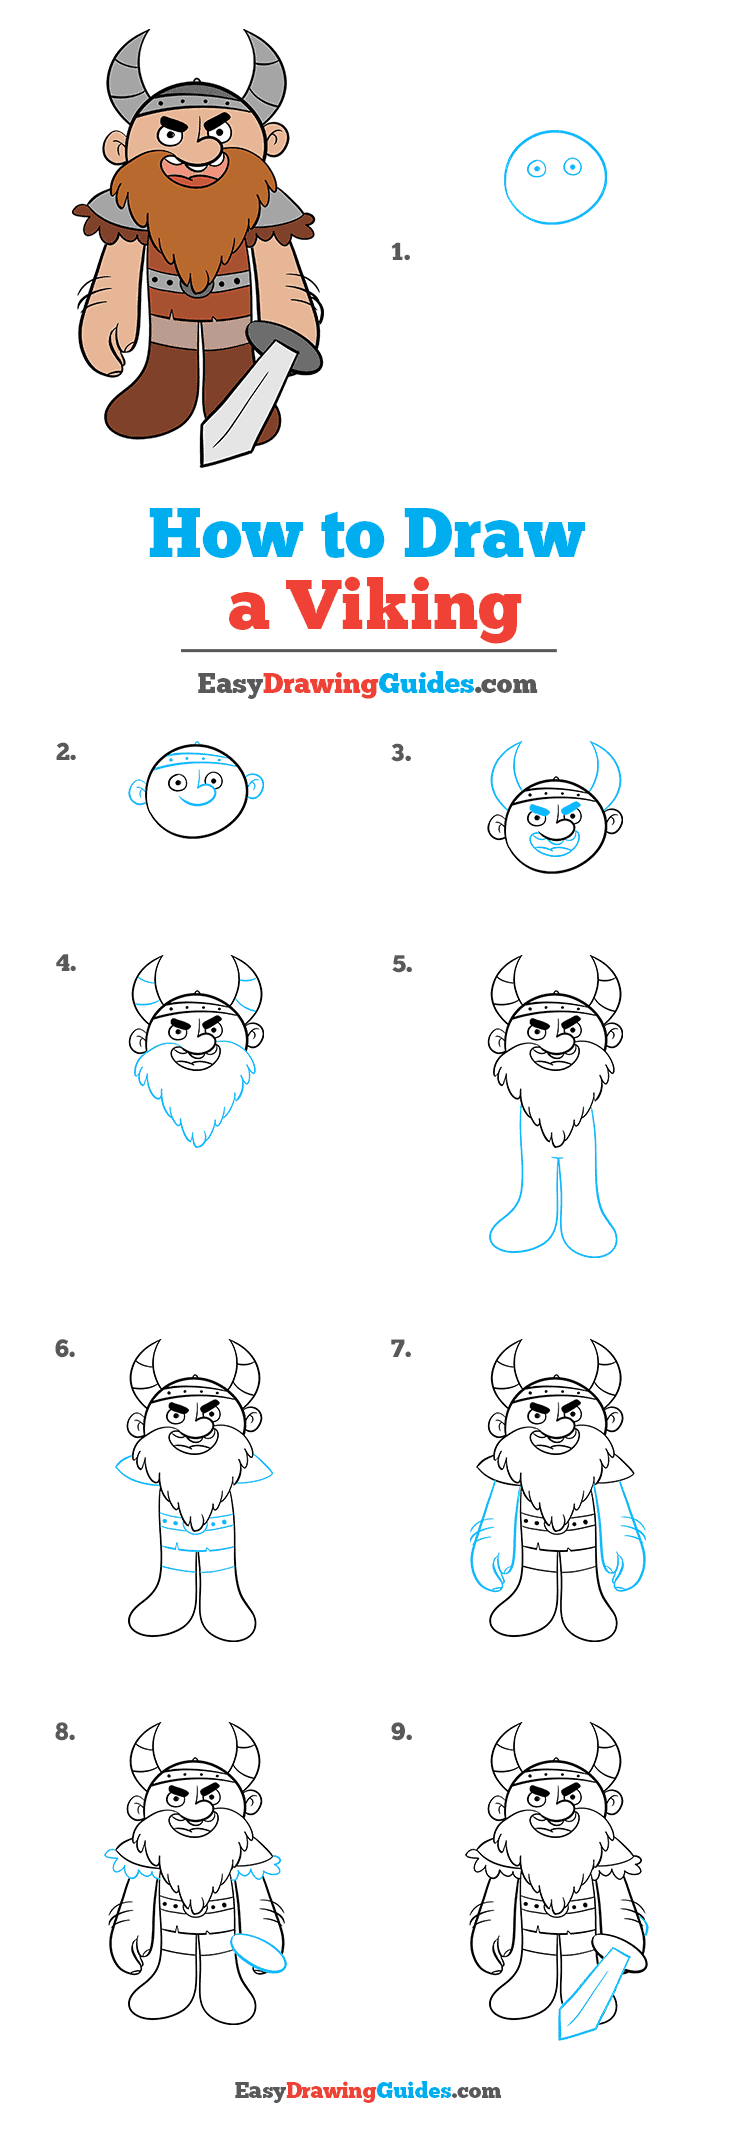 How to Draw a Viking Step by Step Tutorial Image